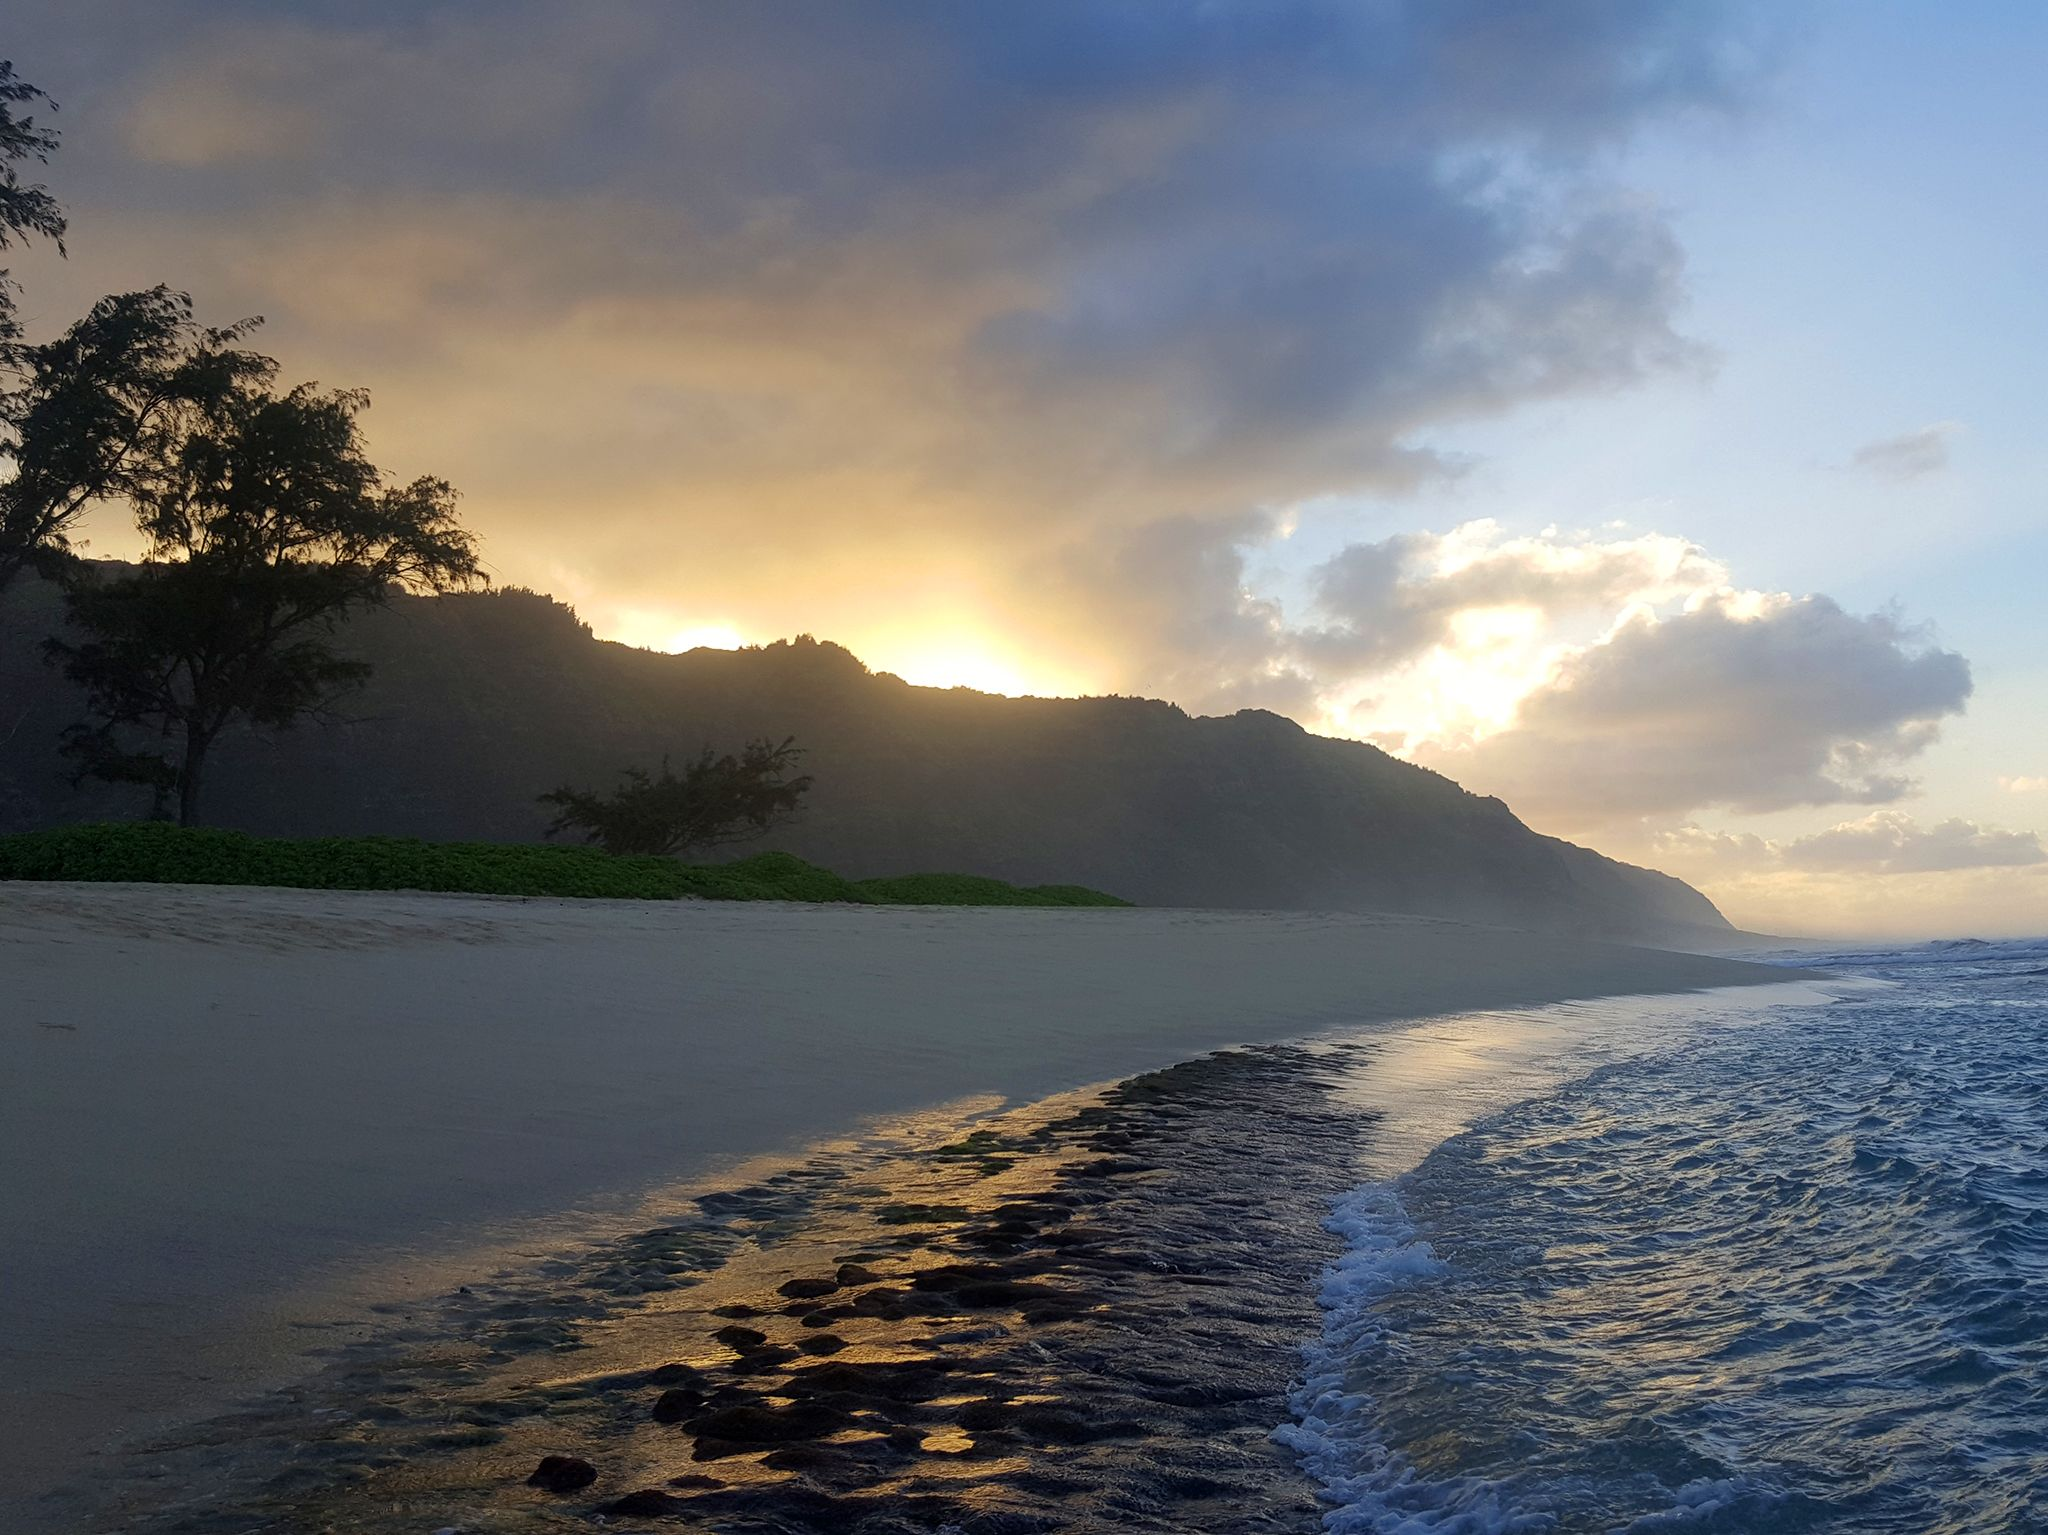 Hawaii North Shore approaching sunset.  This image is from Drain the Oceans. [Photo of the day - May 2020]